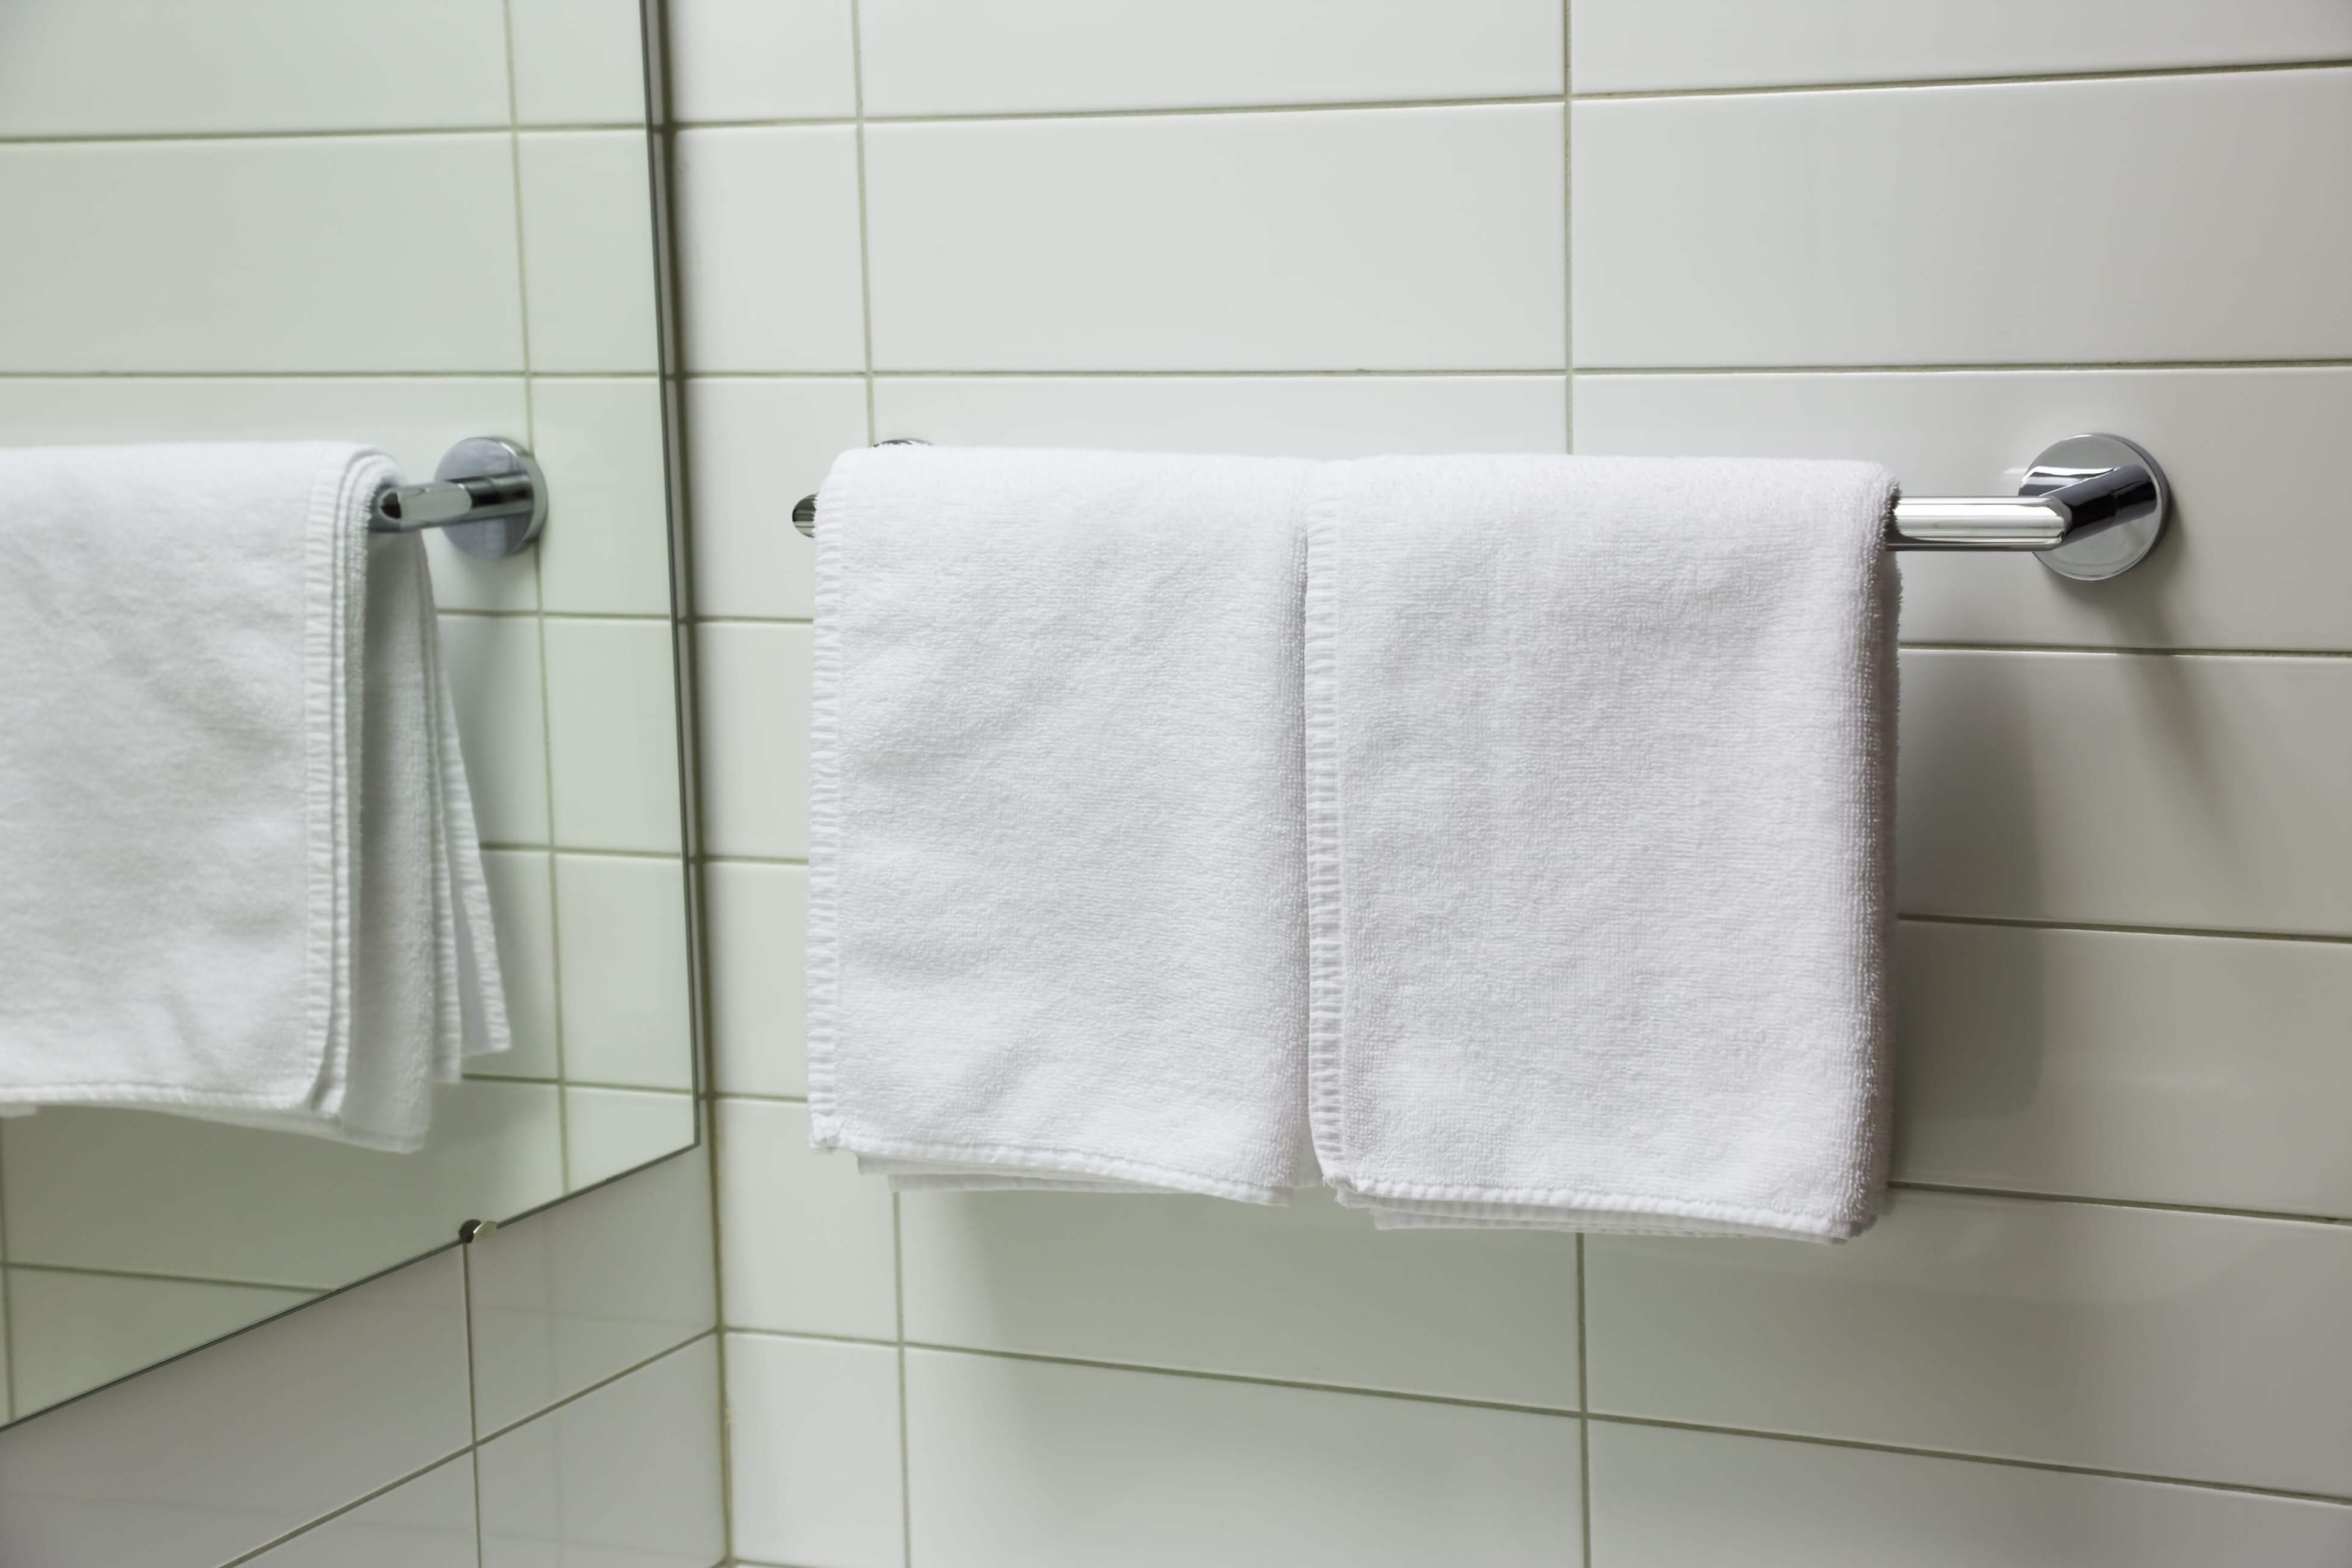 How To Install A Towel Rack On Ceramic Tile